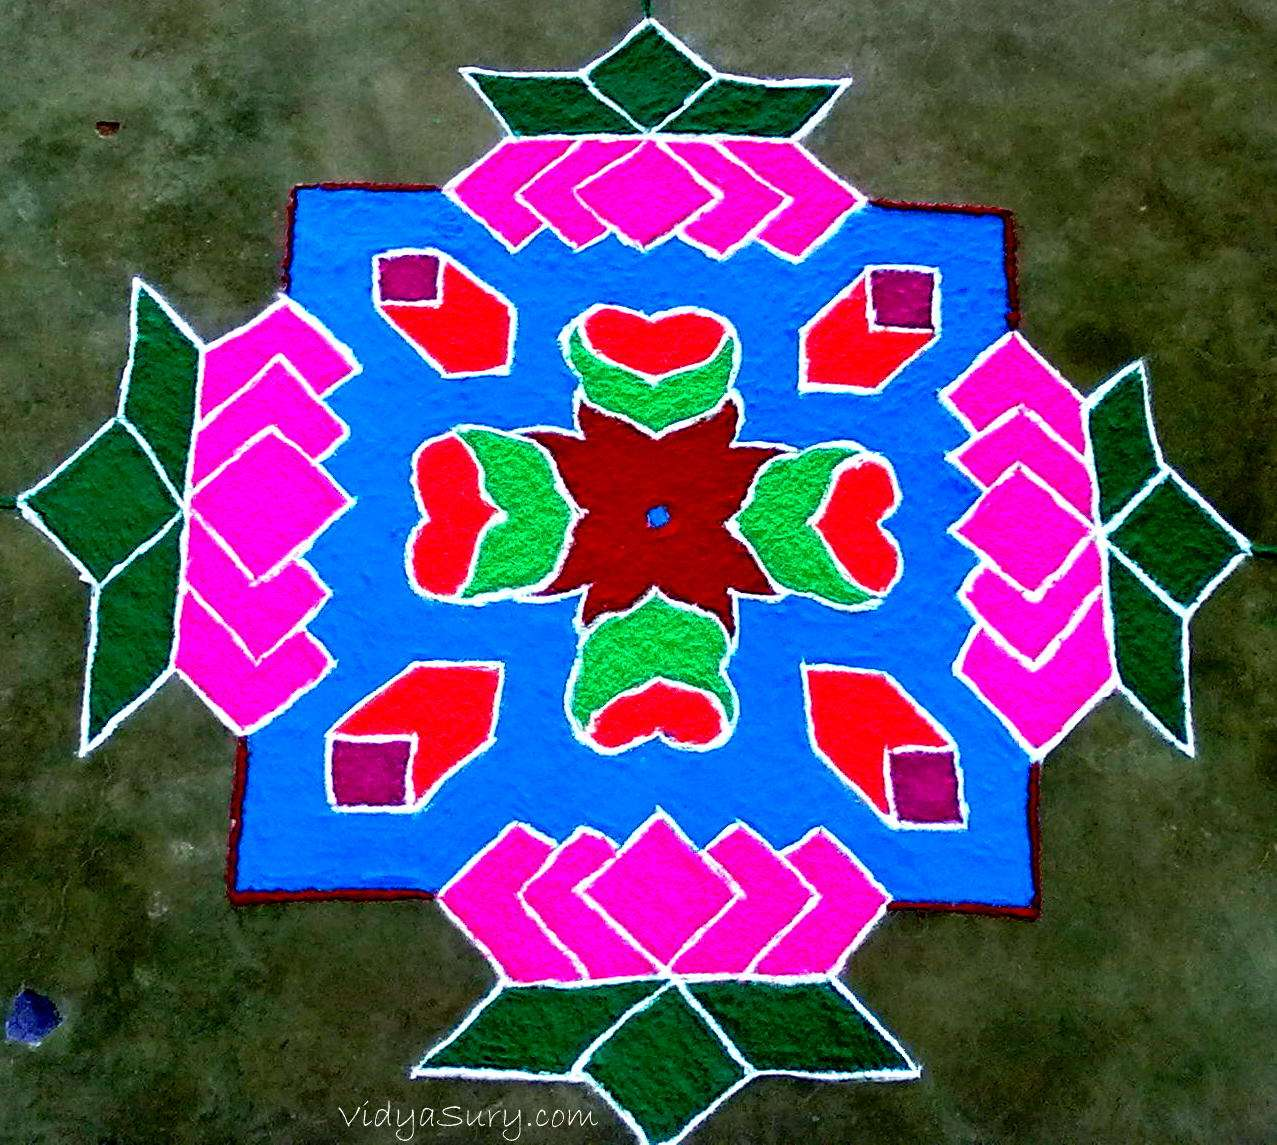 Rangoli Designs For Competition With Concepts The base is white � mixed with